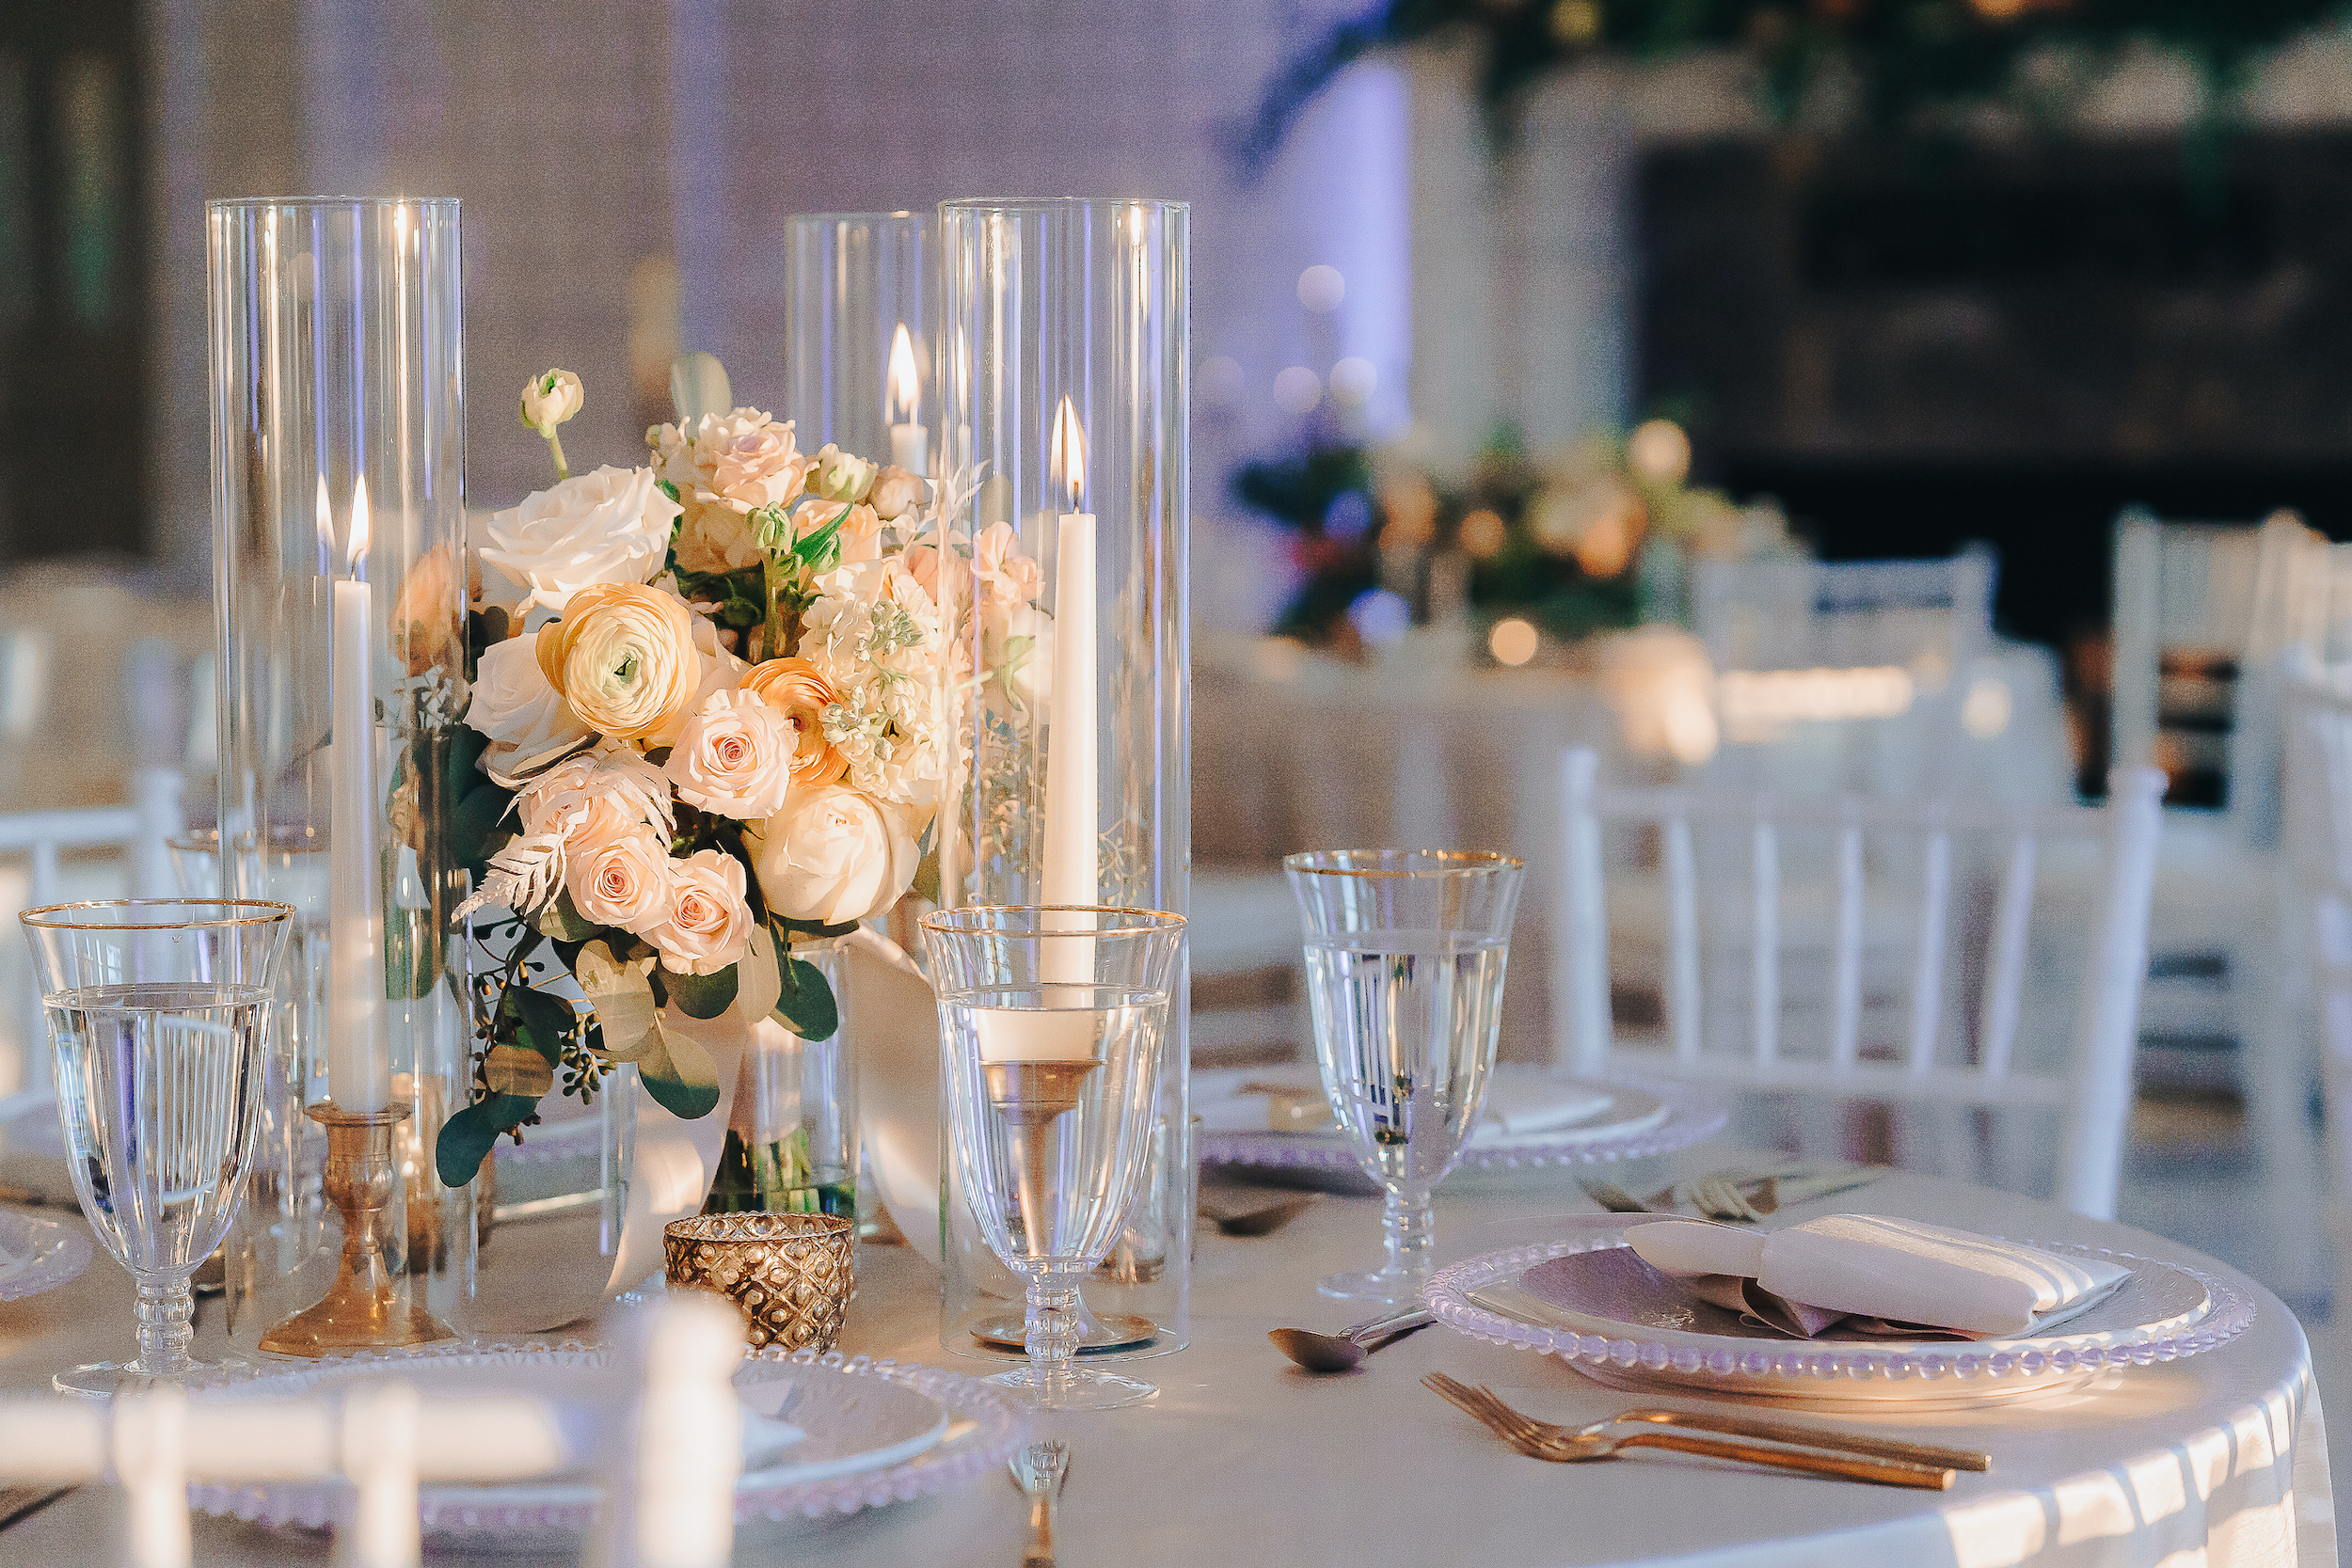 reception table decor, white and peach flowers and glass candle covers